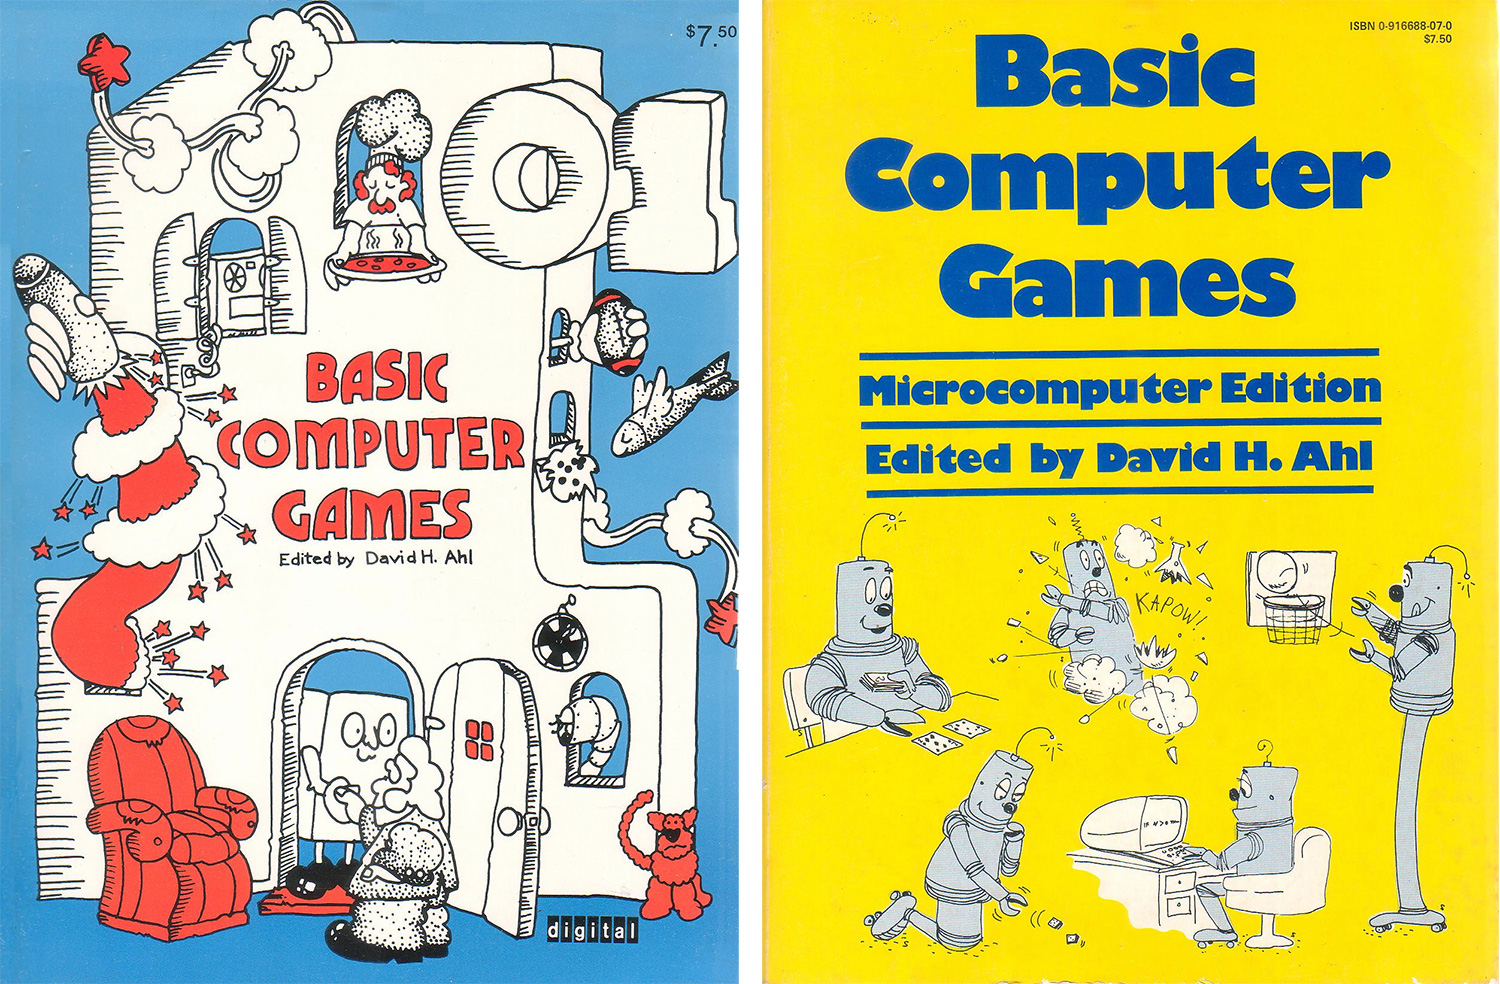 David Ahl's seminal anthology of BASIC games, in its original form as published by Digital Equipment Corp. and a later version rejiggered for PCs